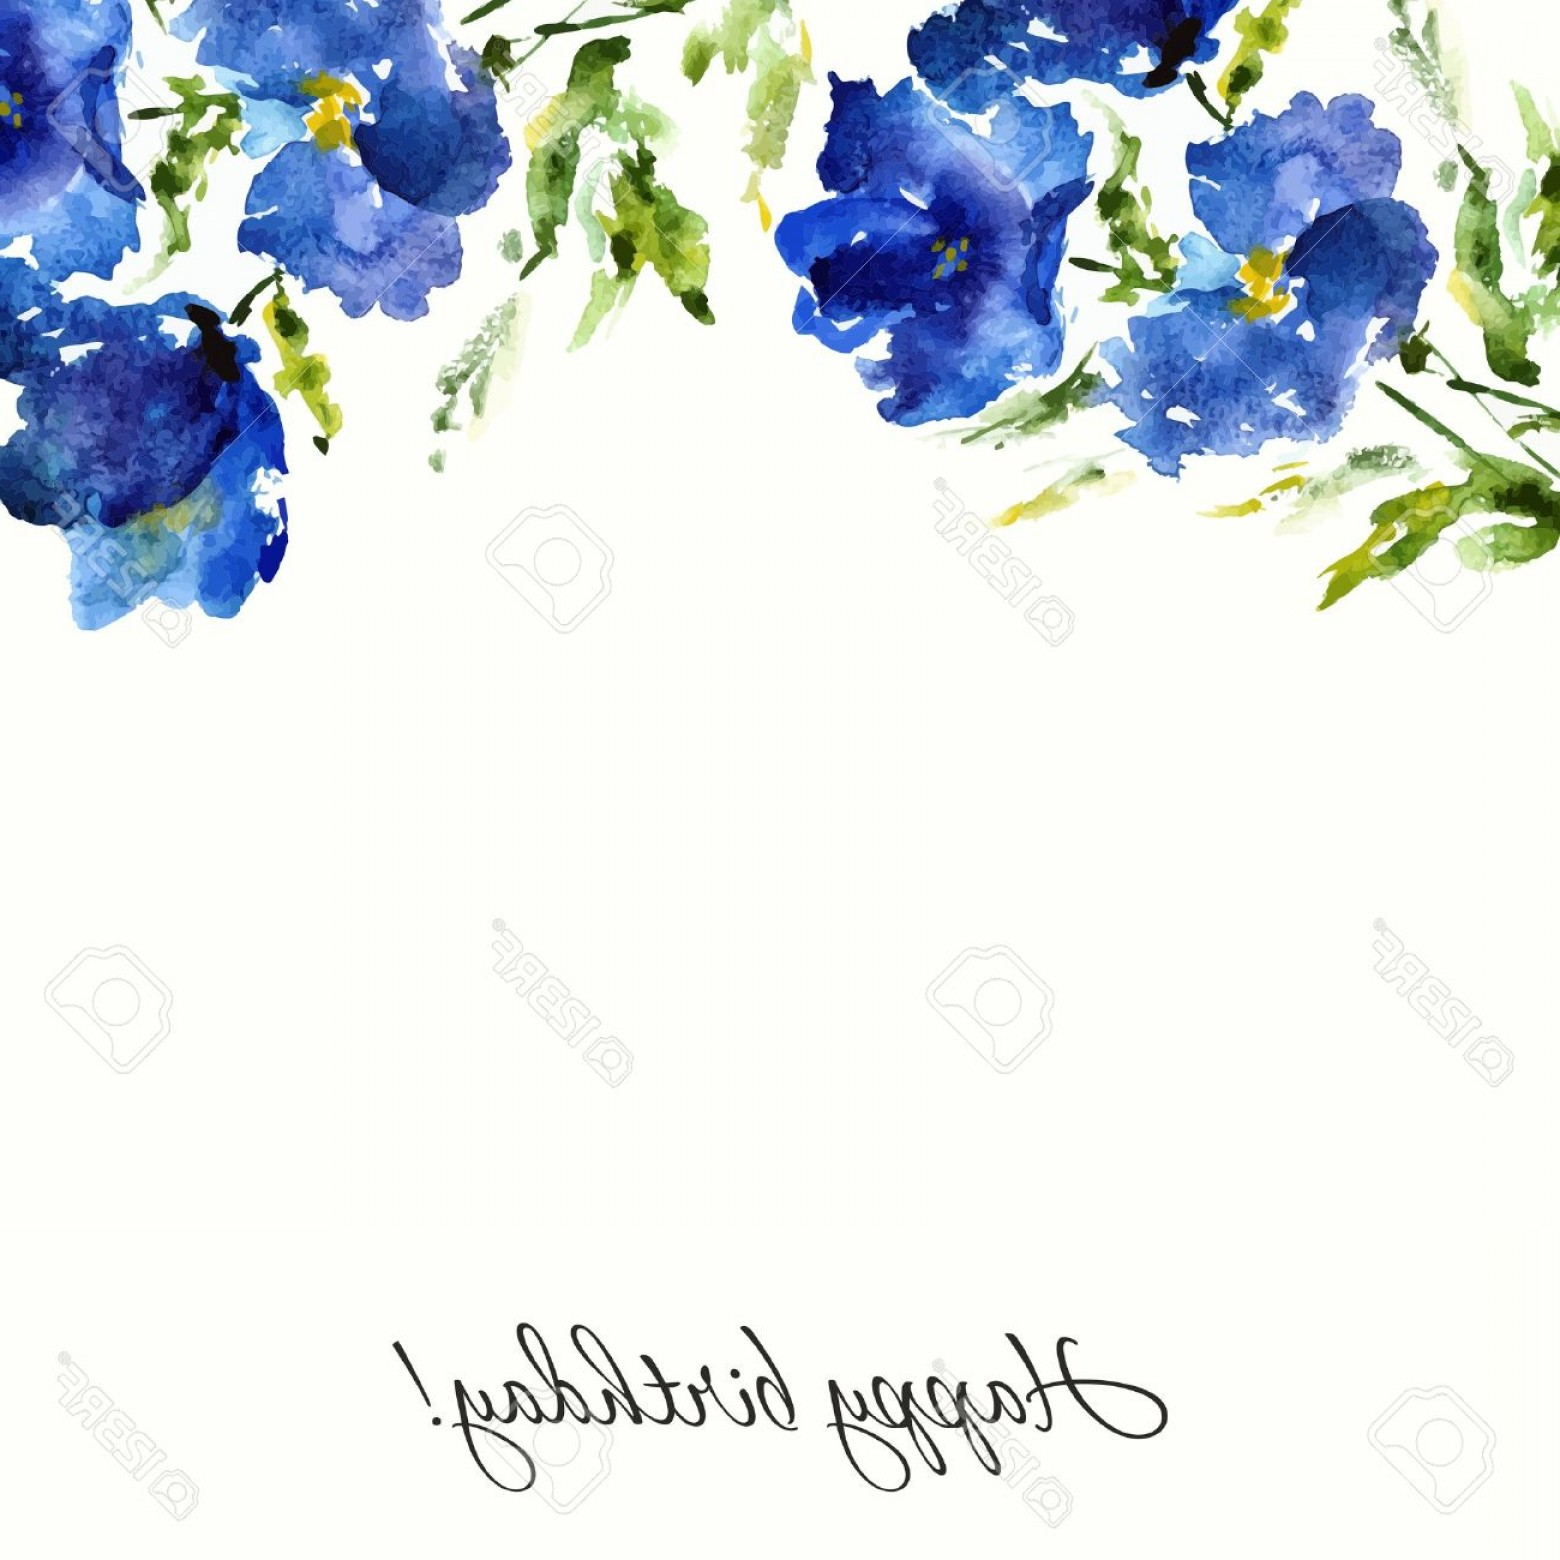 Watercolor Floral Background Vector: Photostock Vector Blue Floral Background Watercolor Flowers Birthday Or Wedding Design